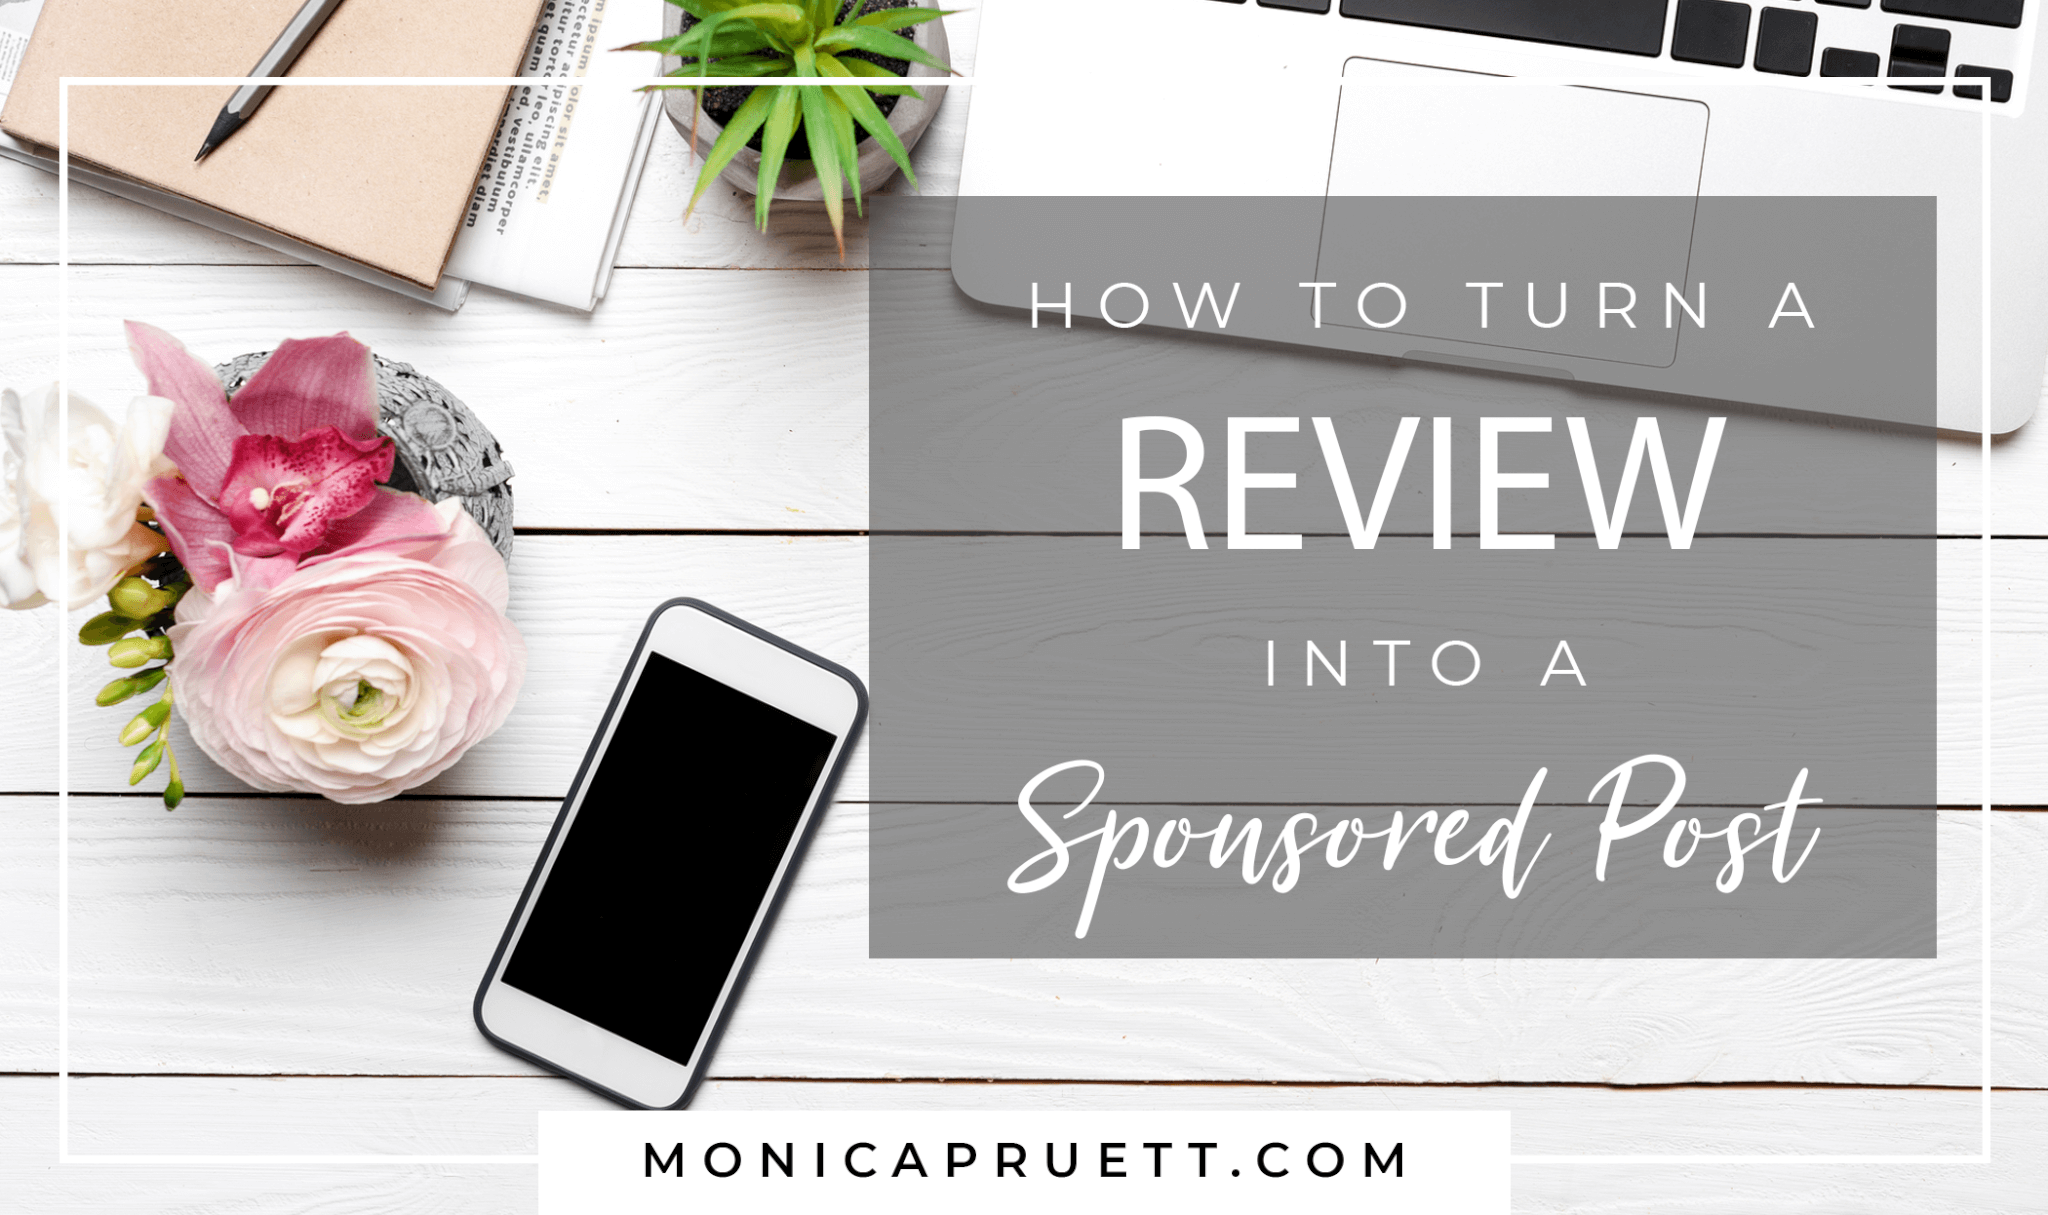 How to Turn a Product Review into a Sponsored Post and get paid to Monetize Your Influence